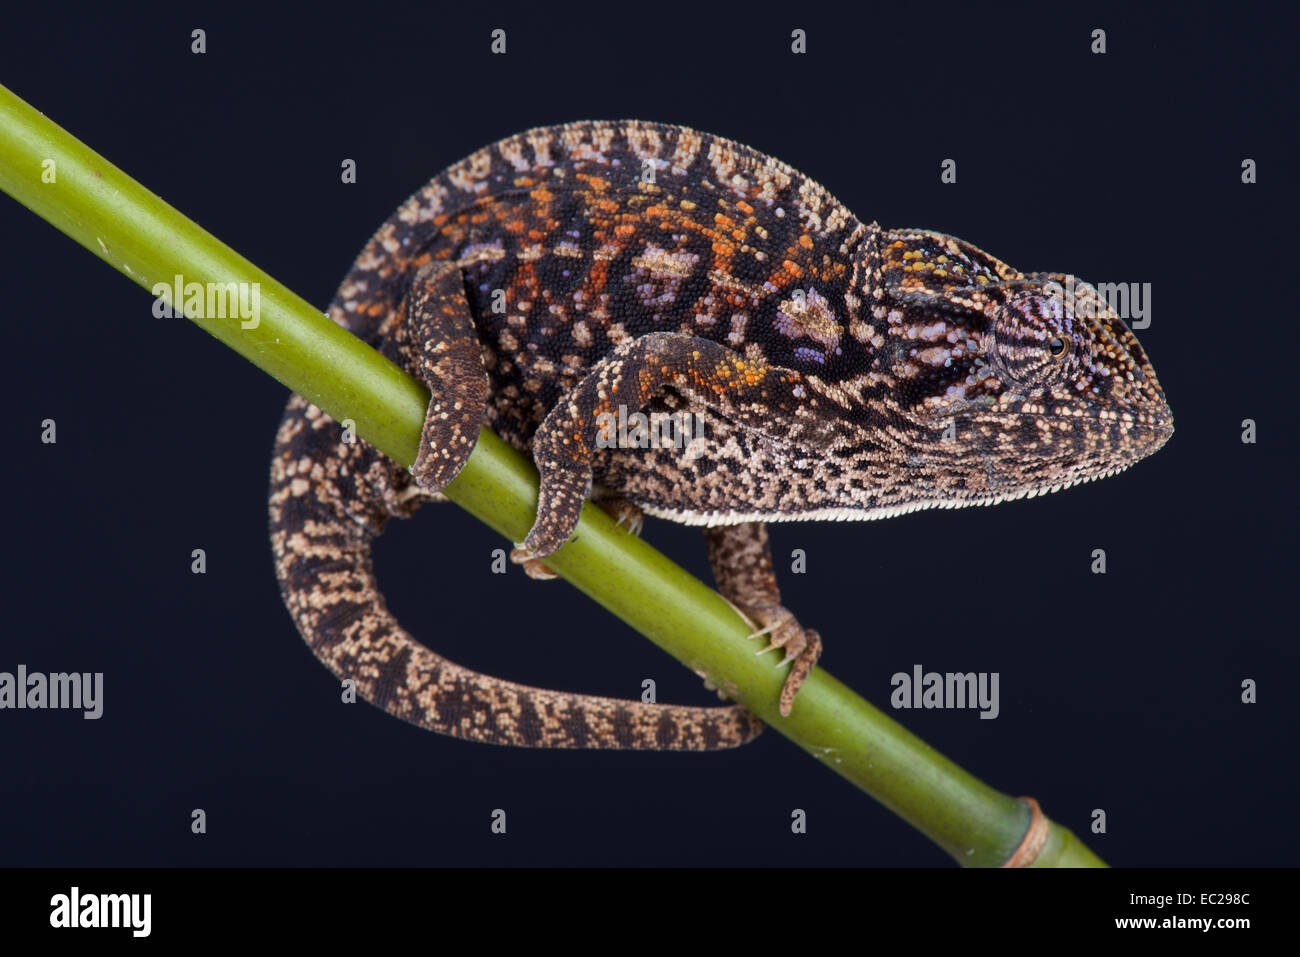 Jeweled chameleon / Furcifer lateralis Immagini Stock